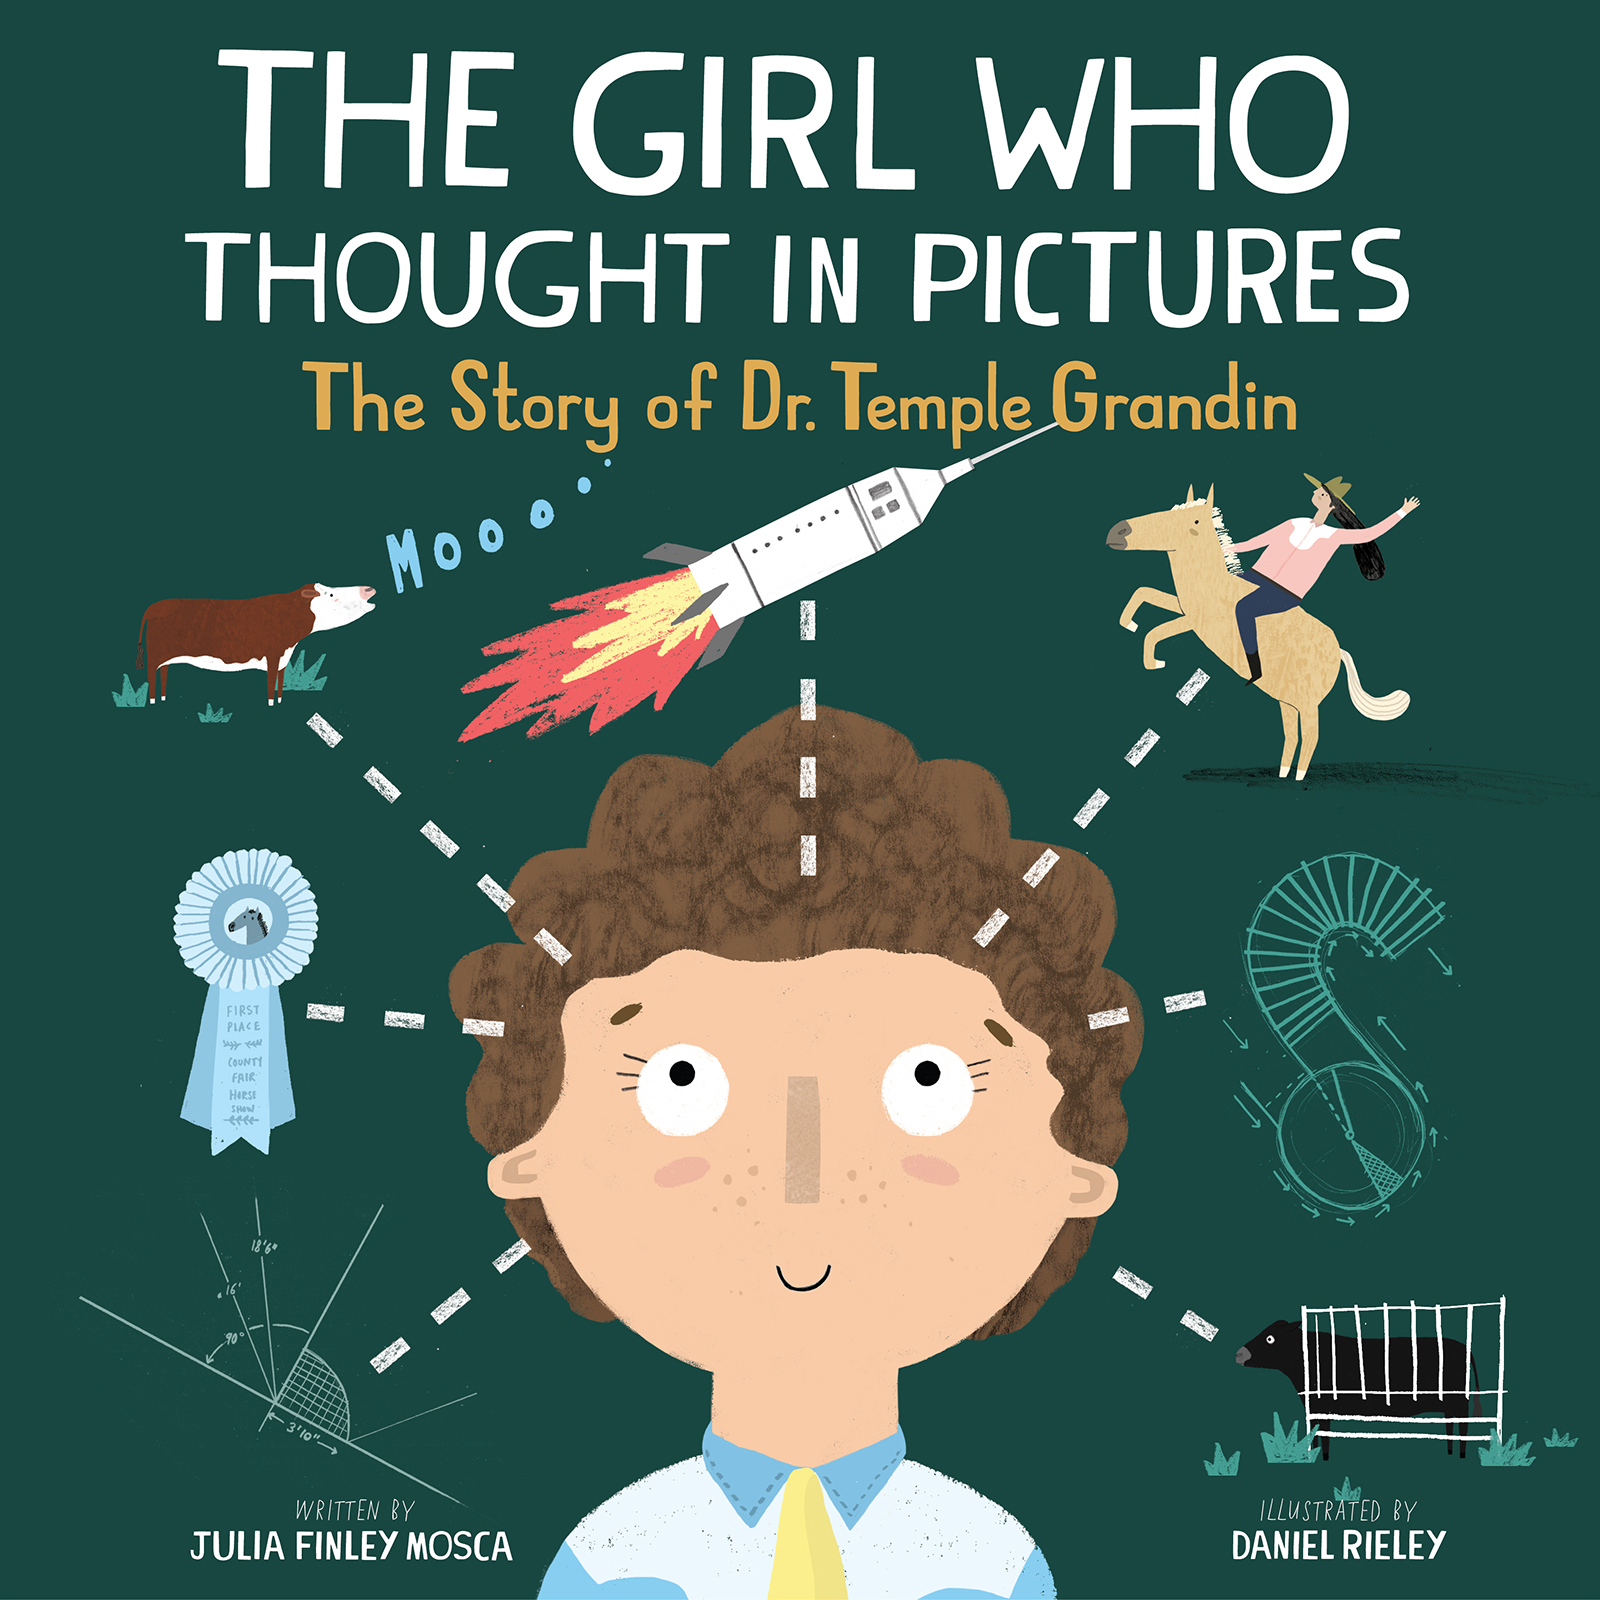 Illustrated Children S Book Covers ~ The girl who thought in pictures a children s book celebrating dr